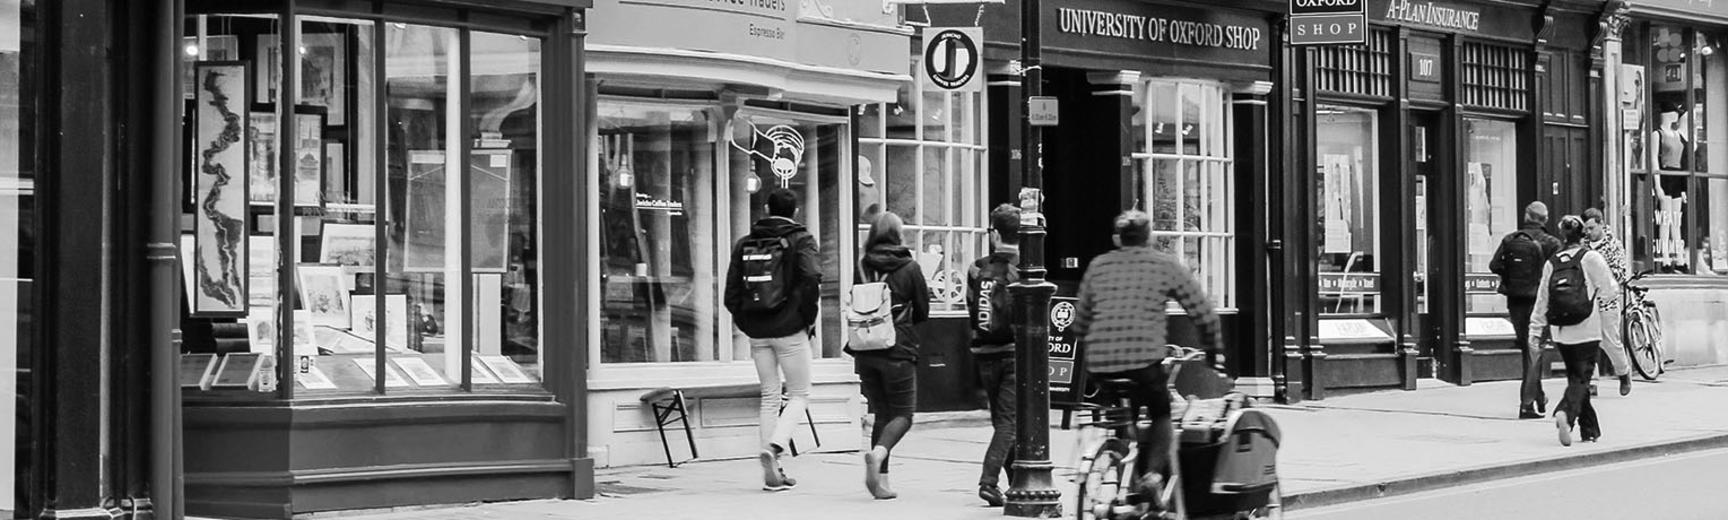 Oxford High Street (Photo by Hannah Petersen on Unsplash)